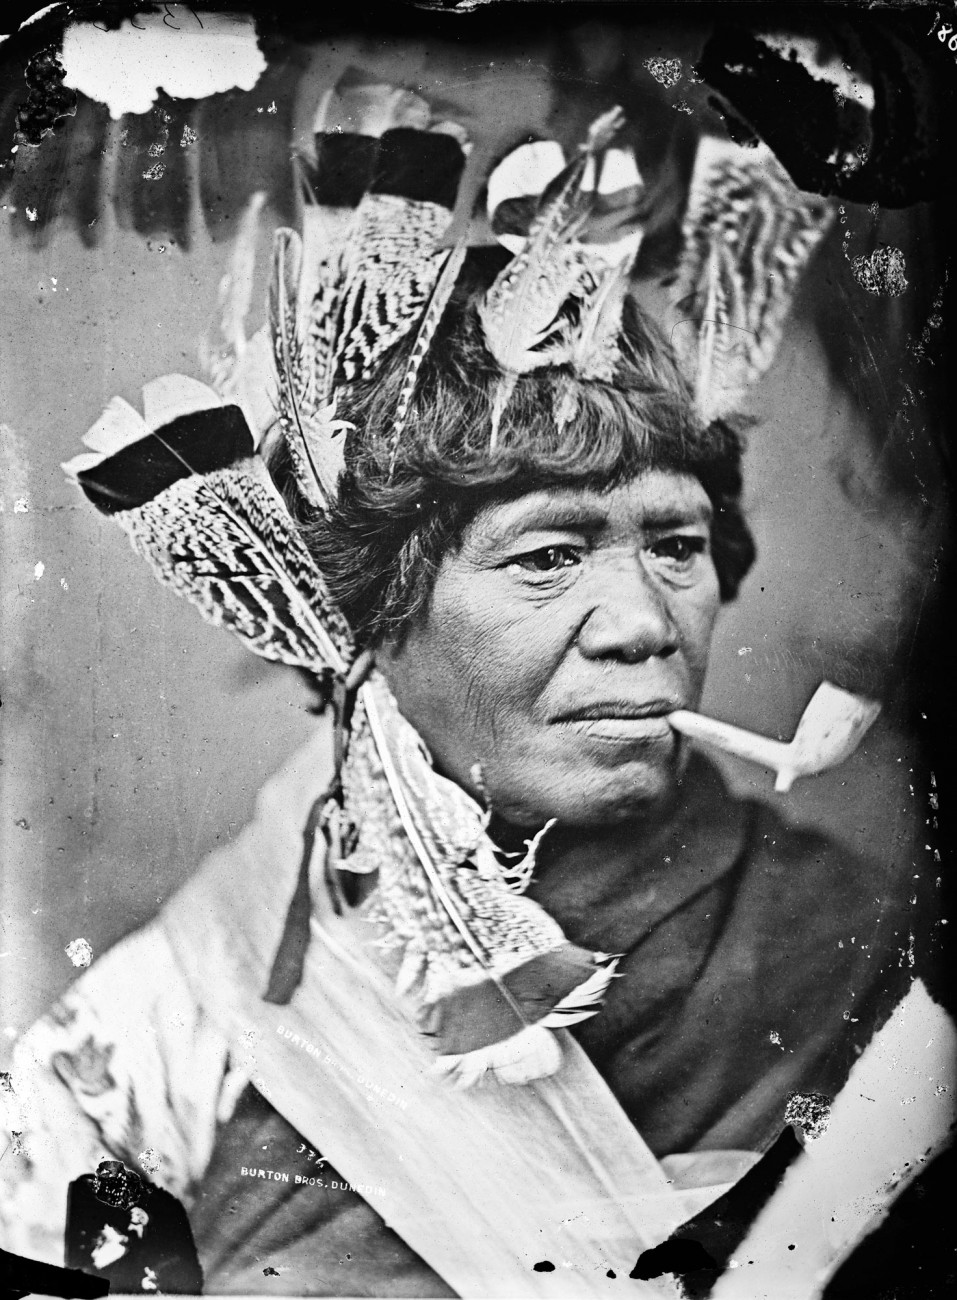 Many of McGarrigle's Maori portraits bear an unmistakable resemblance to contemporary photographs of Native Americans yet, despite trading as the American Photographic Company, there is no evidence that he ever visited that country. It was common at that time for photographers to keep a wardrobe of clothes and accessories for dressing their subjects. But a hallmark of McGarrigle's Maori images is that, however much they may deviate at times from historical accuracy, they never seem forced or imposed. As with many of his portraits, this image carries the name stamp of photographer Alfred Burton, who purchased a collection of negatives when McGarrigle moved to Australia.